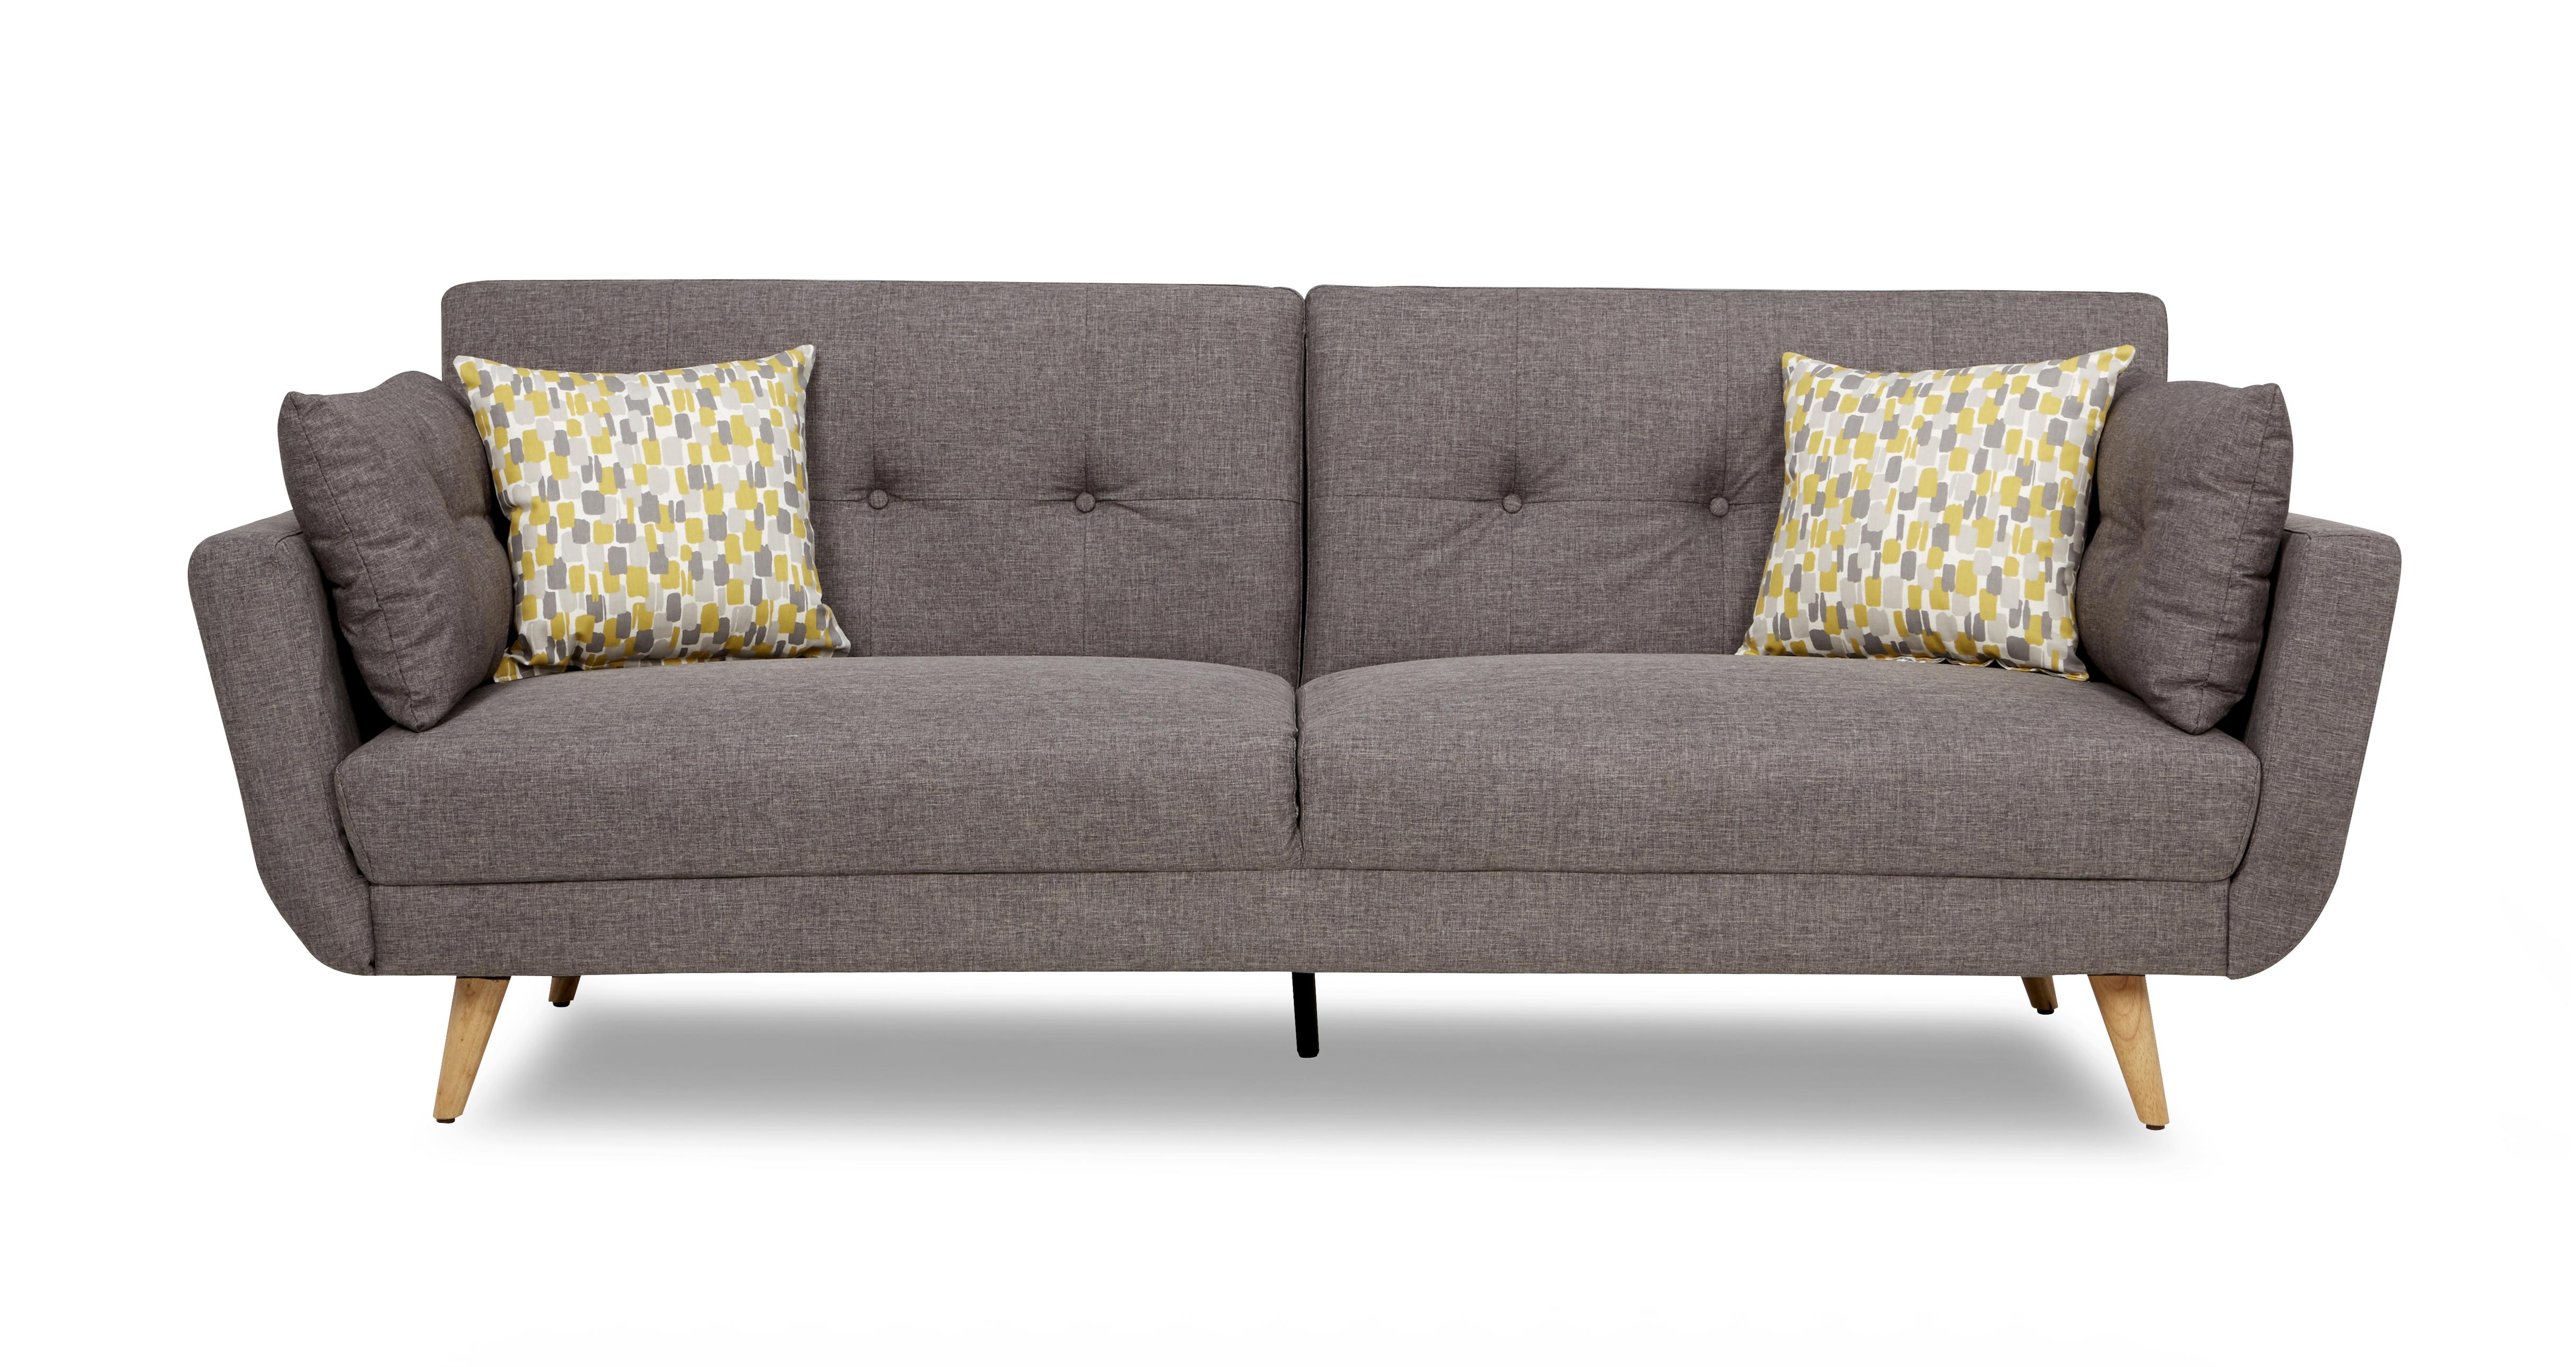 Sofa Bed Inca Sofabed Dfs